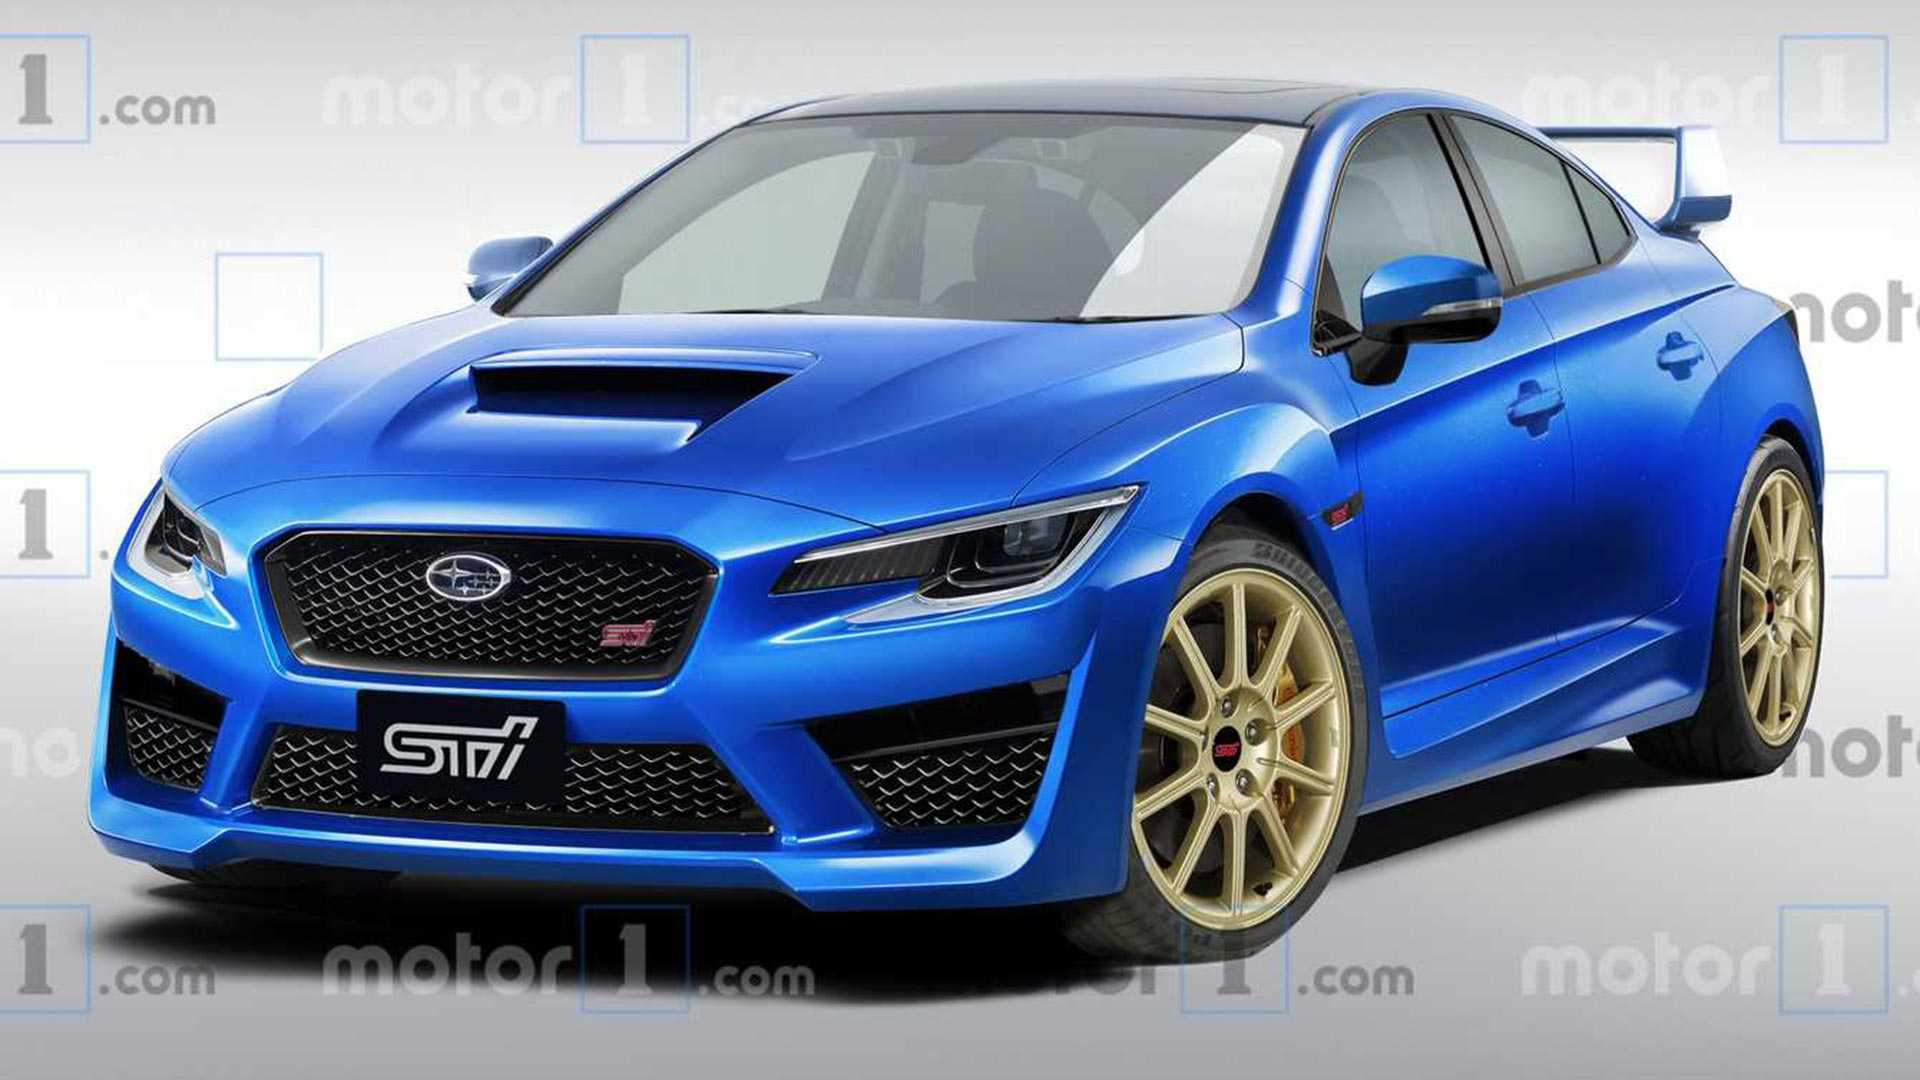 new subaru wrx  wrx sti  levorg coming in late 2020  report